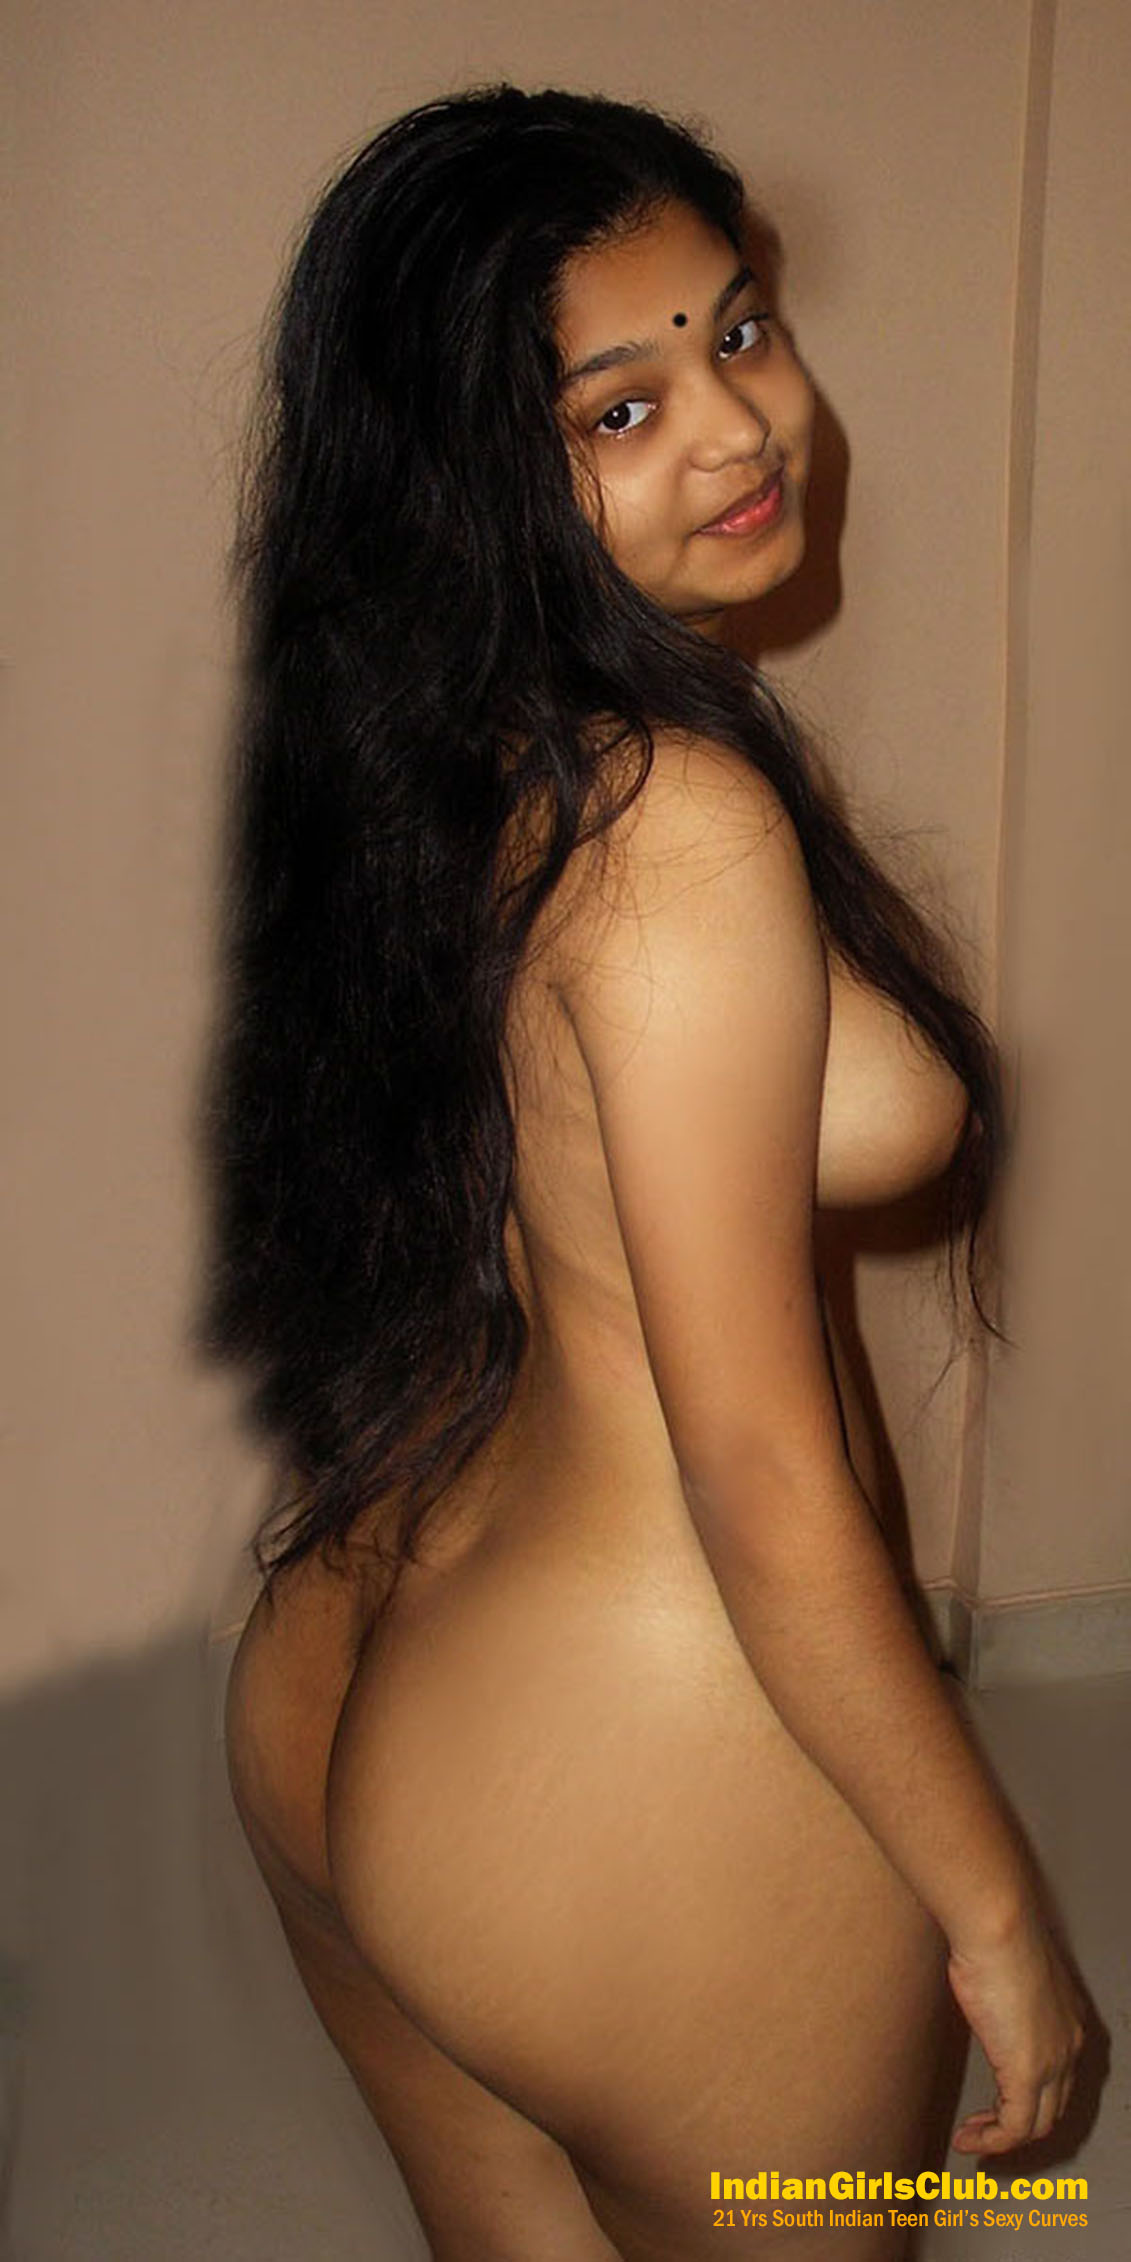 Beautiful young girls boobs indian, national lampoon barely legal sex